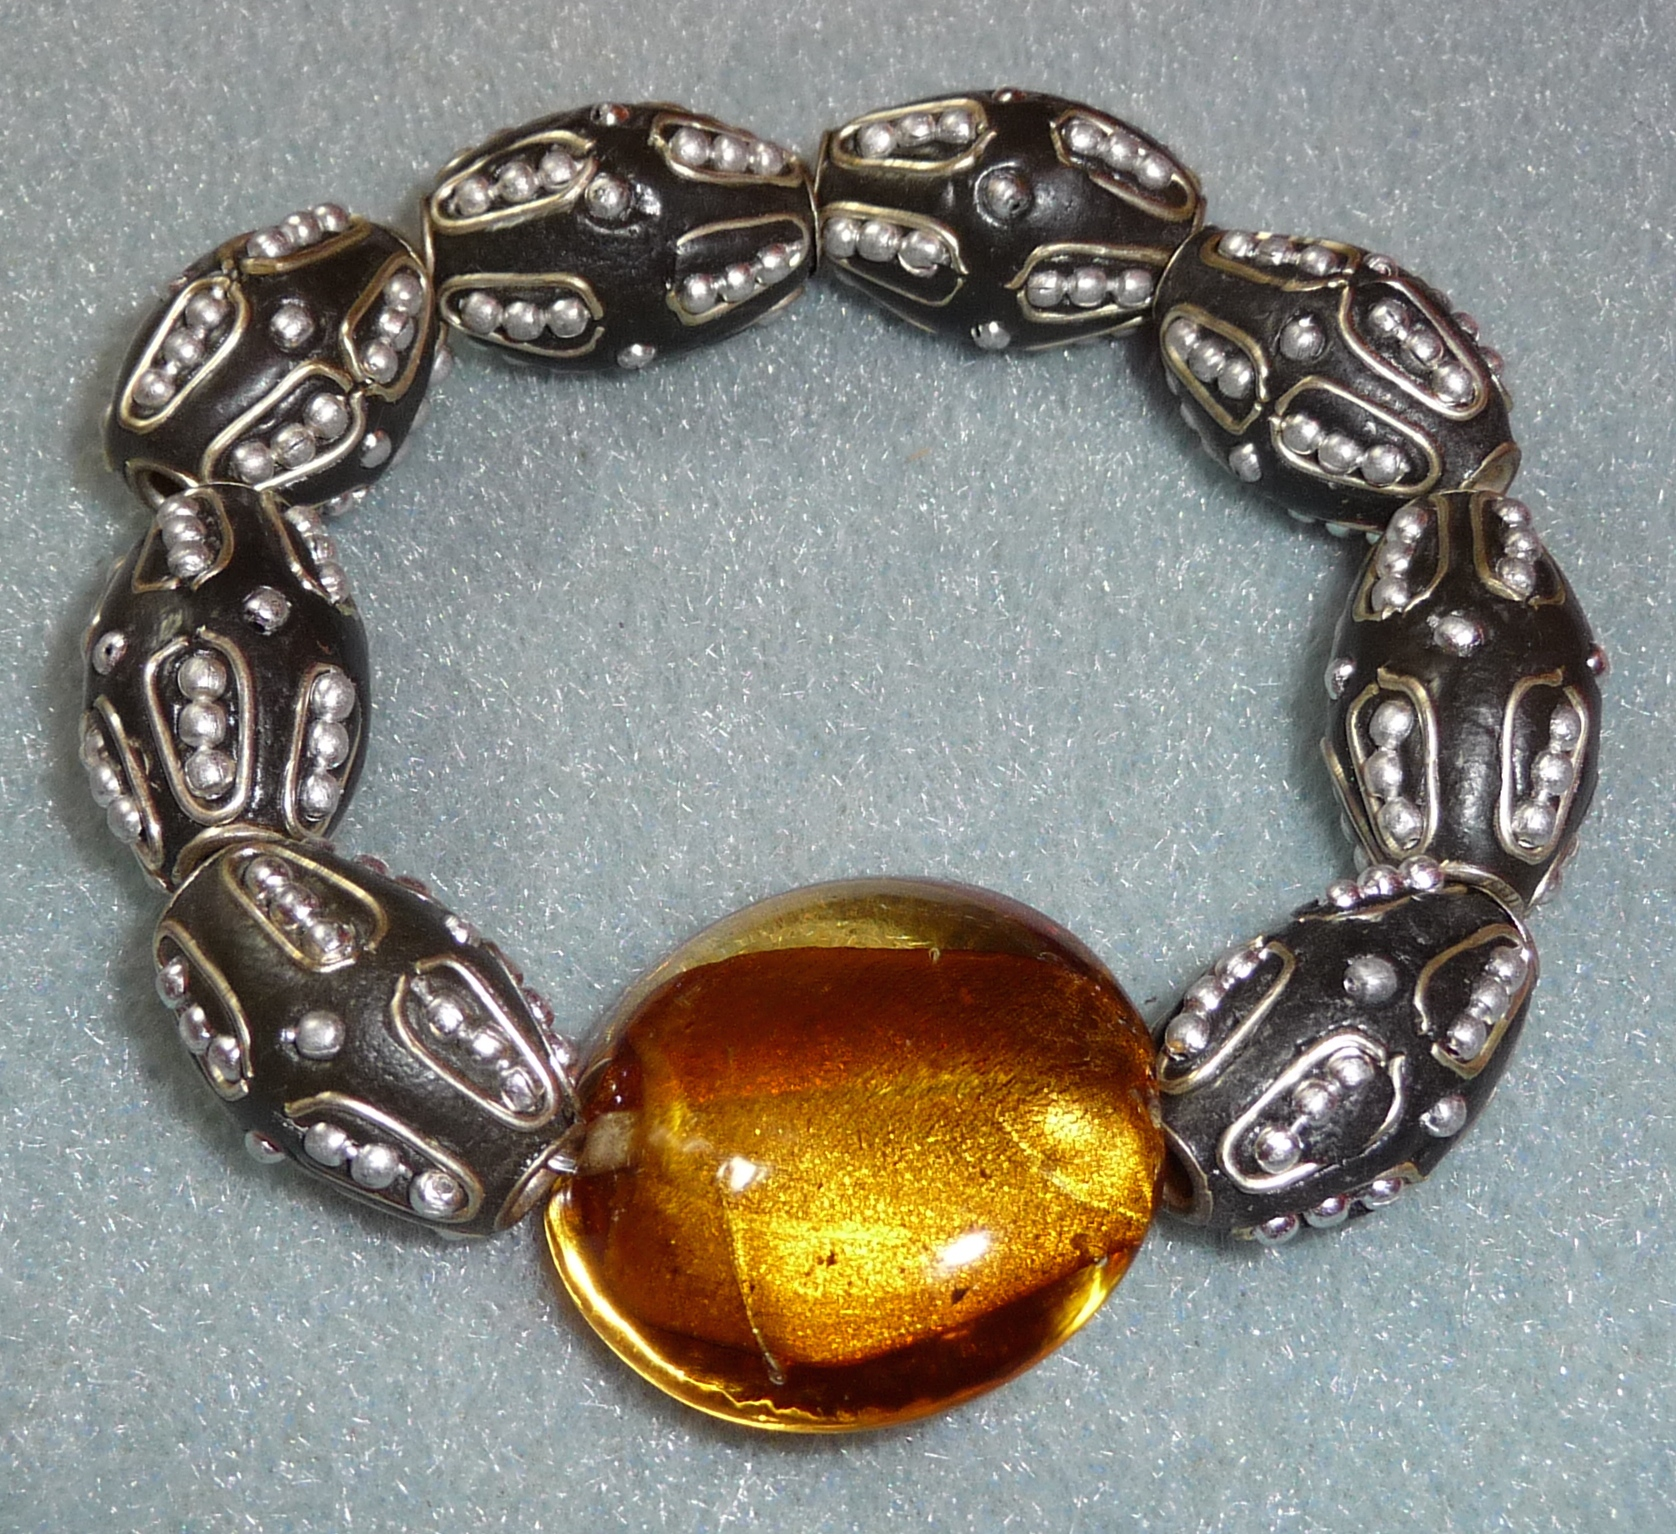 Warm amber jewel with eclectic beads